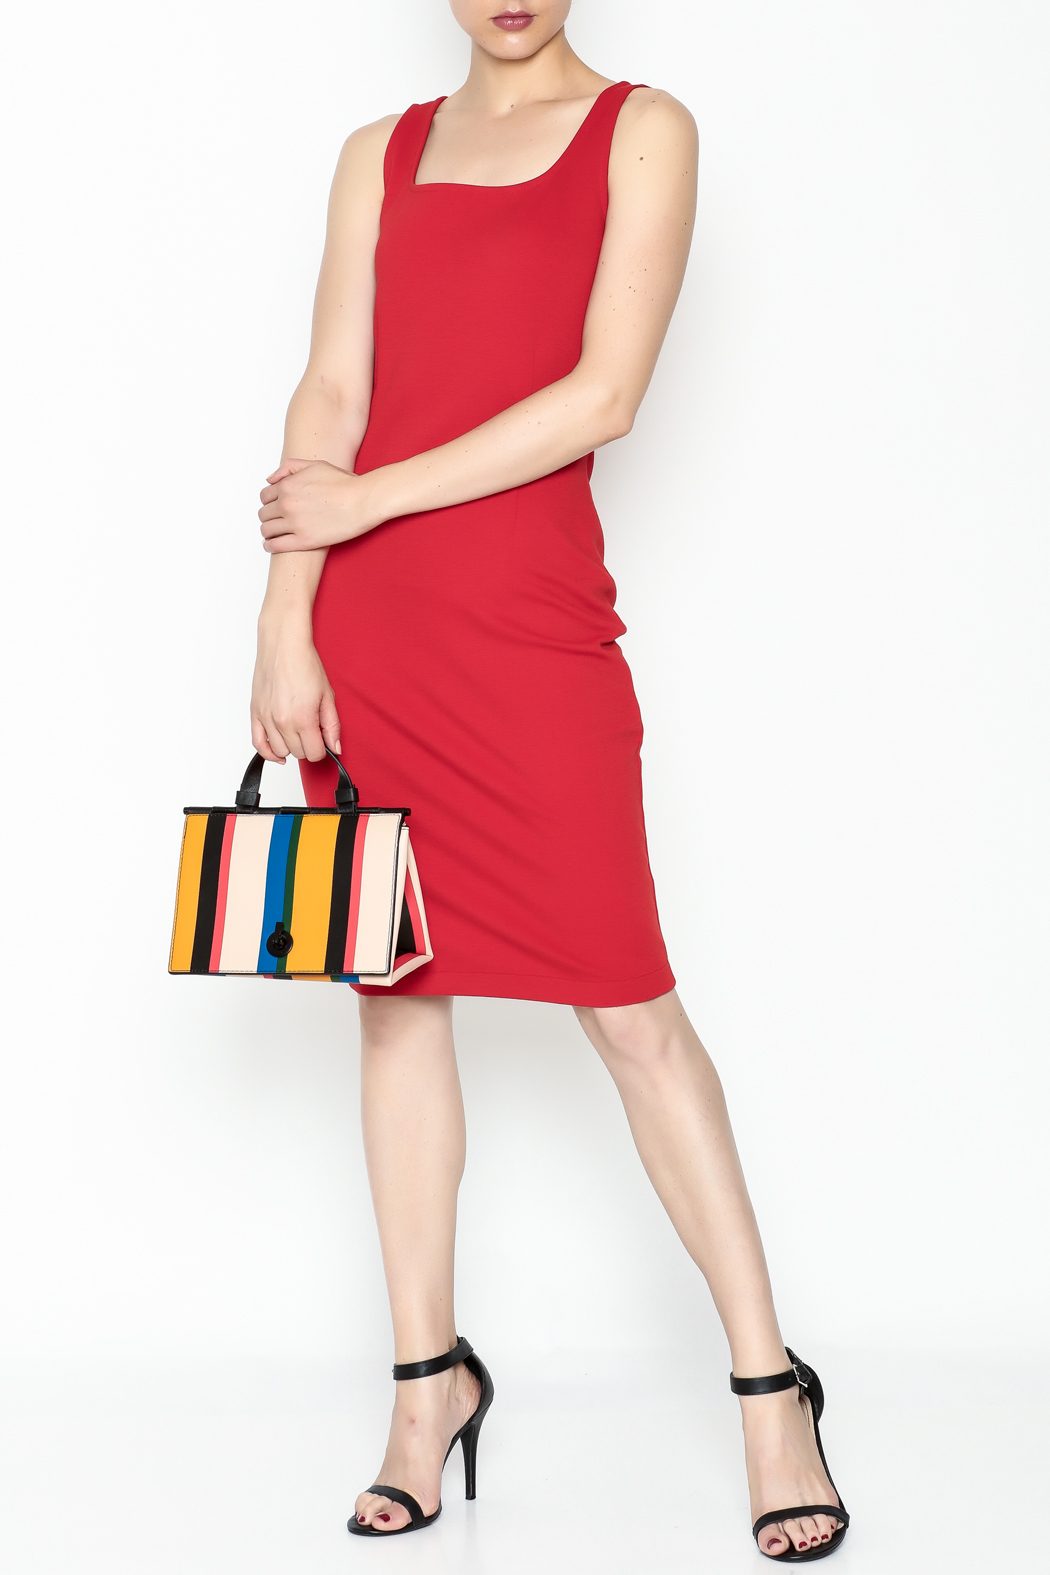 26Line by MLNK Poppy Sheath Dress - Side Cropped Image